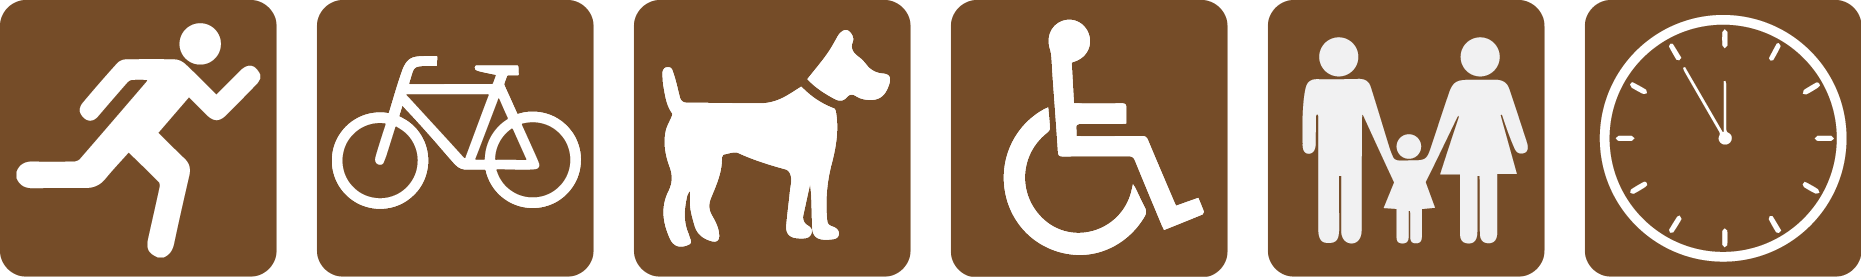 4.1-4.2 South Frontage Road Trail icons